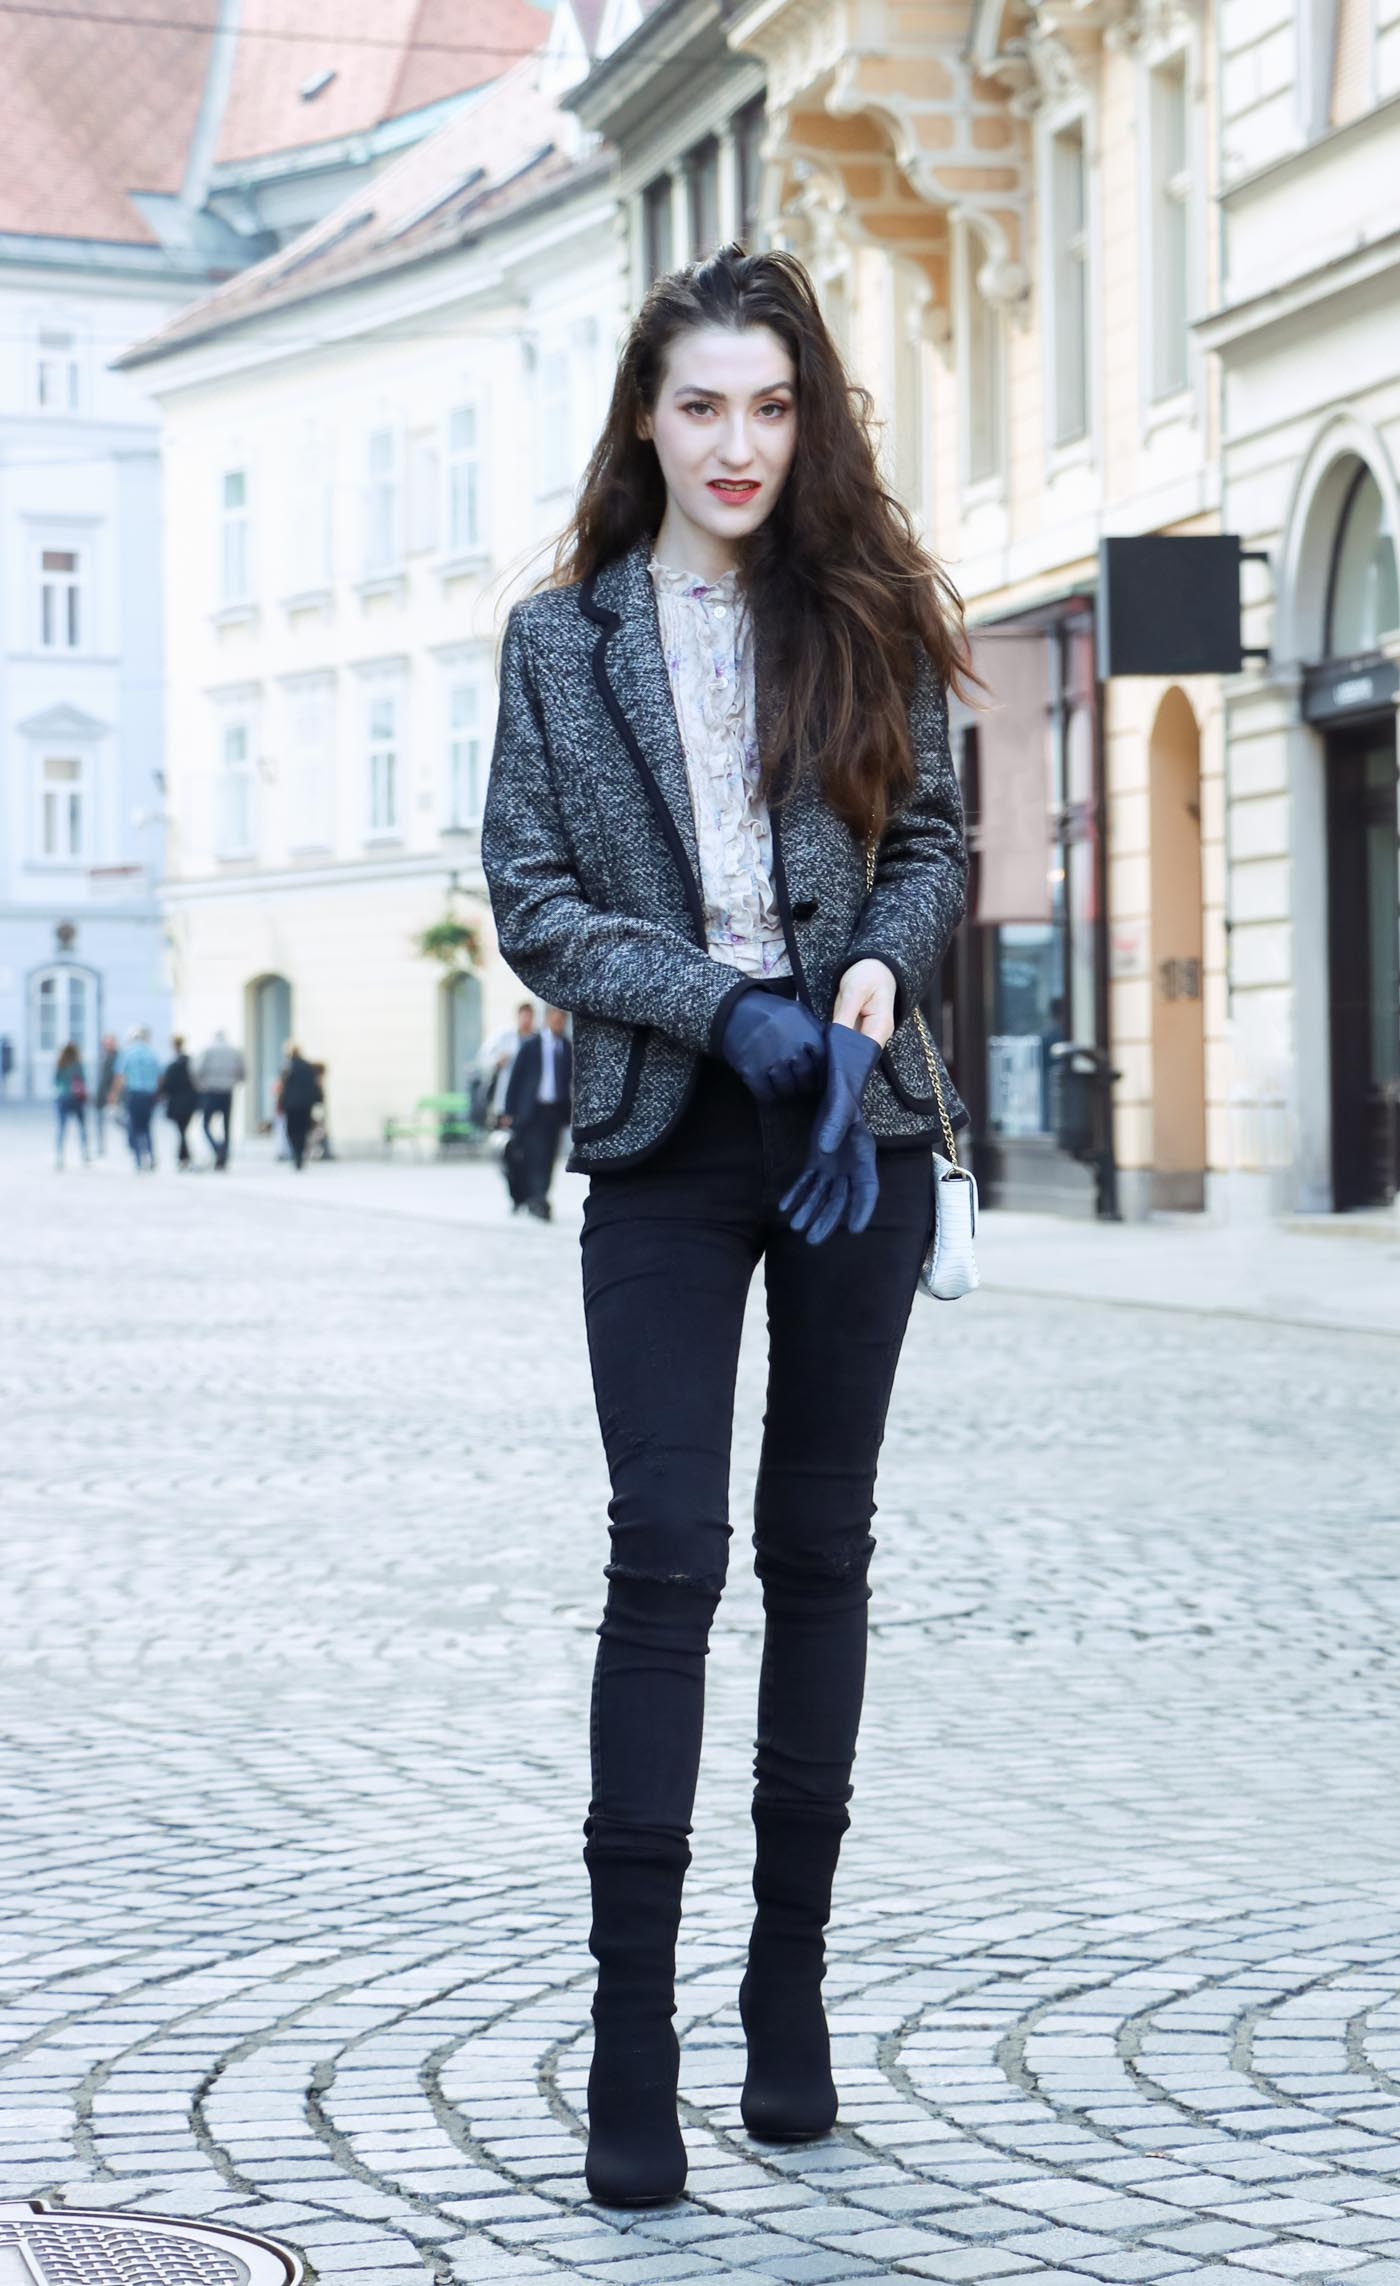 Fashion Blogger Veronika Lipar of Brunette from Wall wearing black skinny jeans, black sock ankle boots and floral high collar blouse under tweed black and white blazer